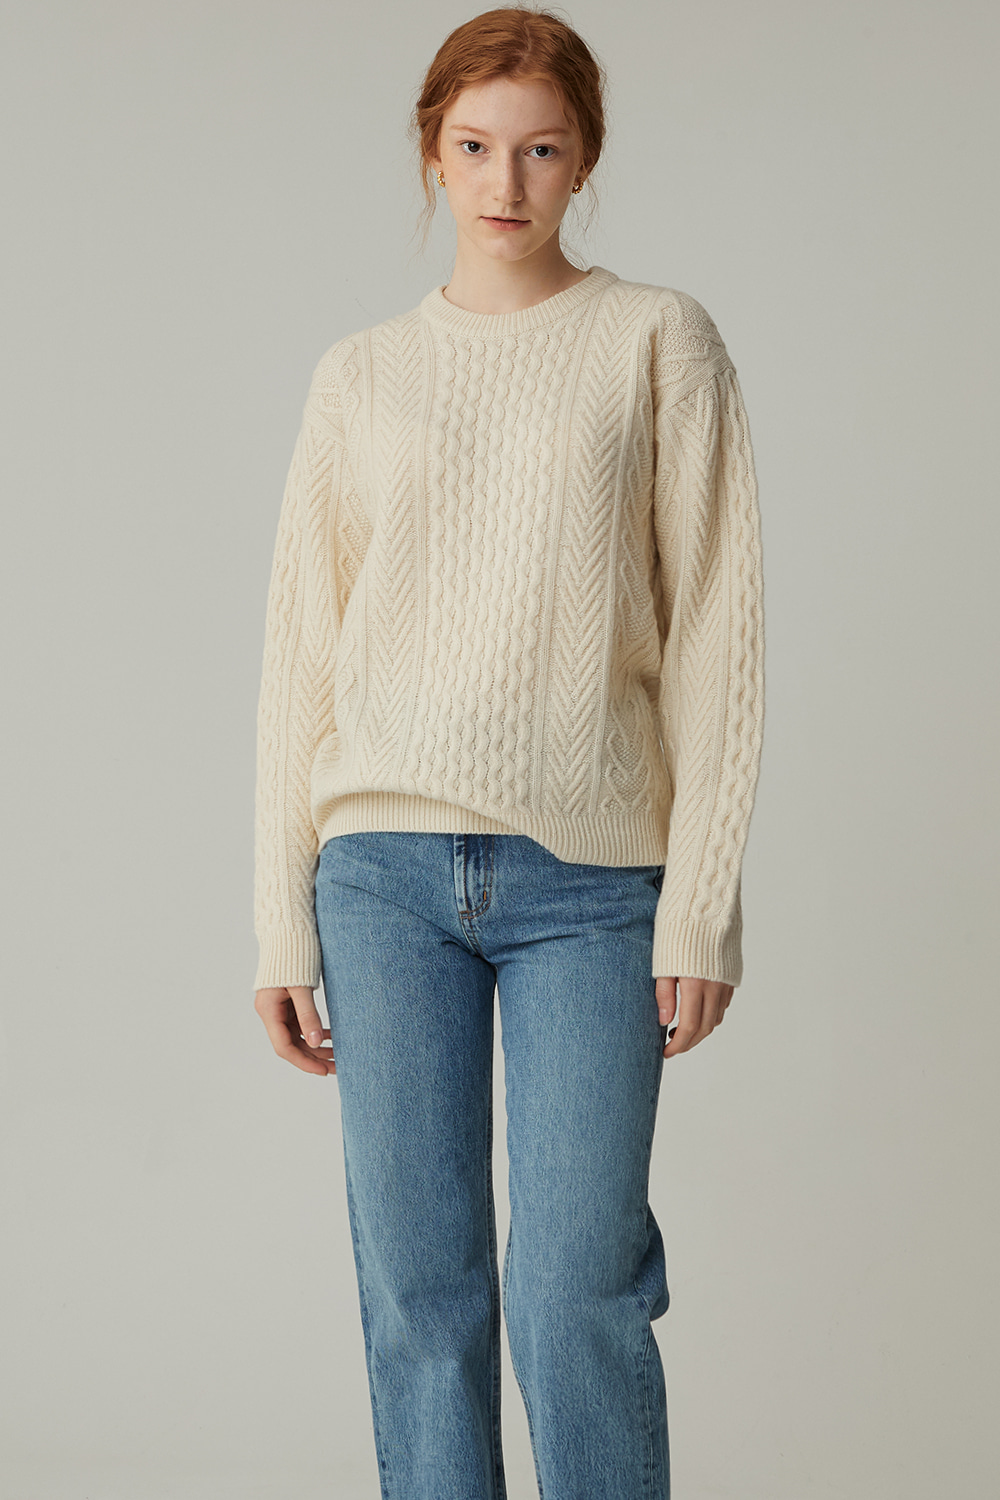 WOOL CABLE KNIT (CREAM)